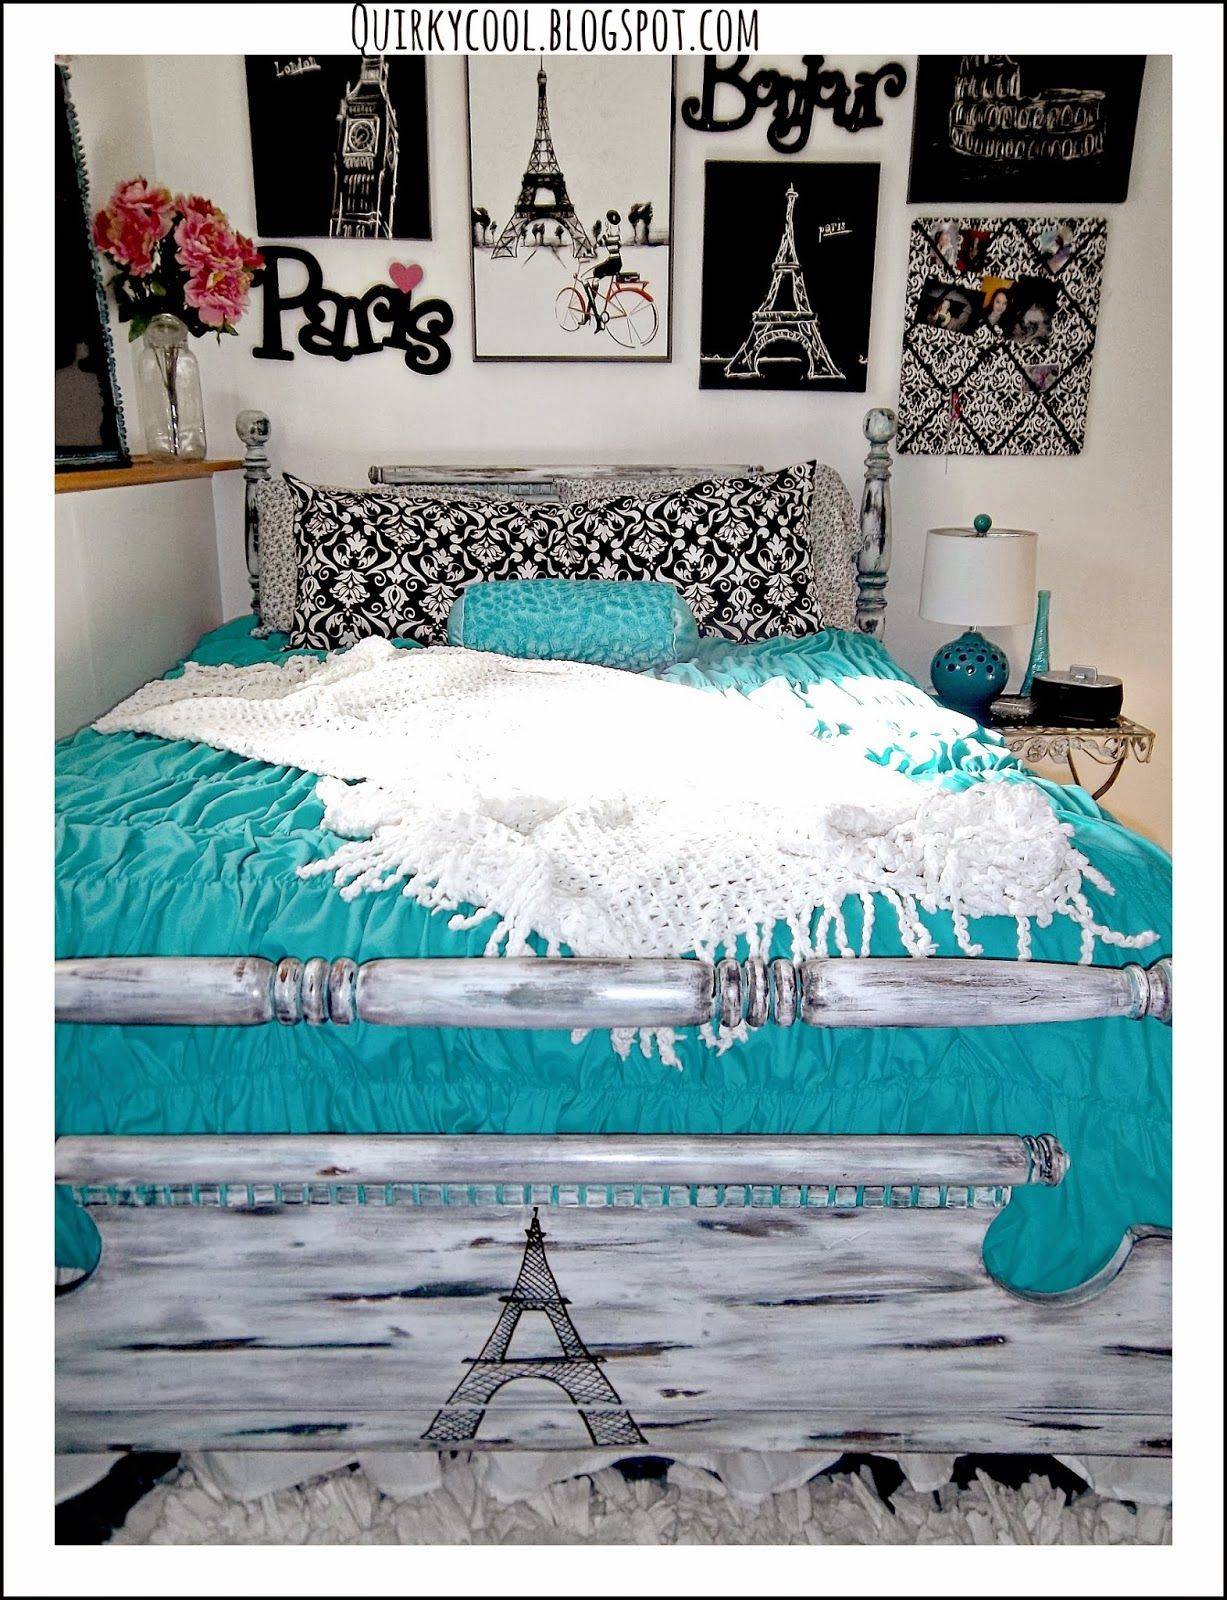 A Parisian Chic girls bedroom Po Dunk Junk Pinterest